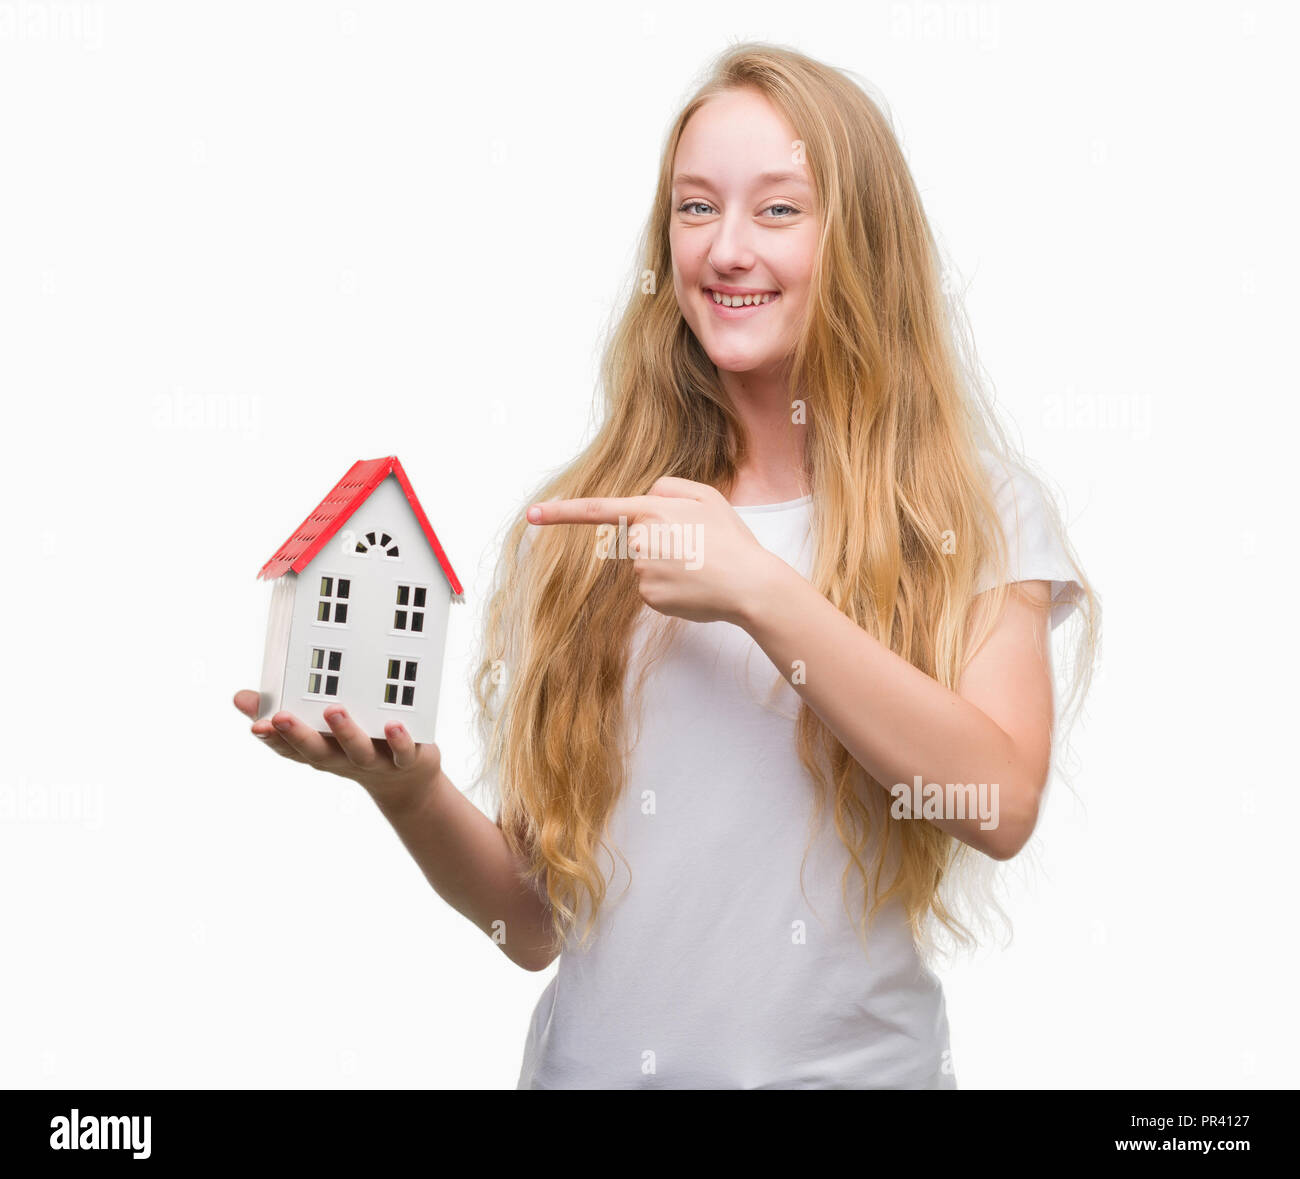 Blonde teenager woman holding family house very happy pointing with hand and finger - Stock Image